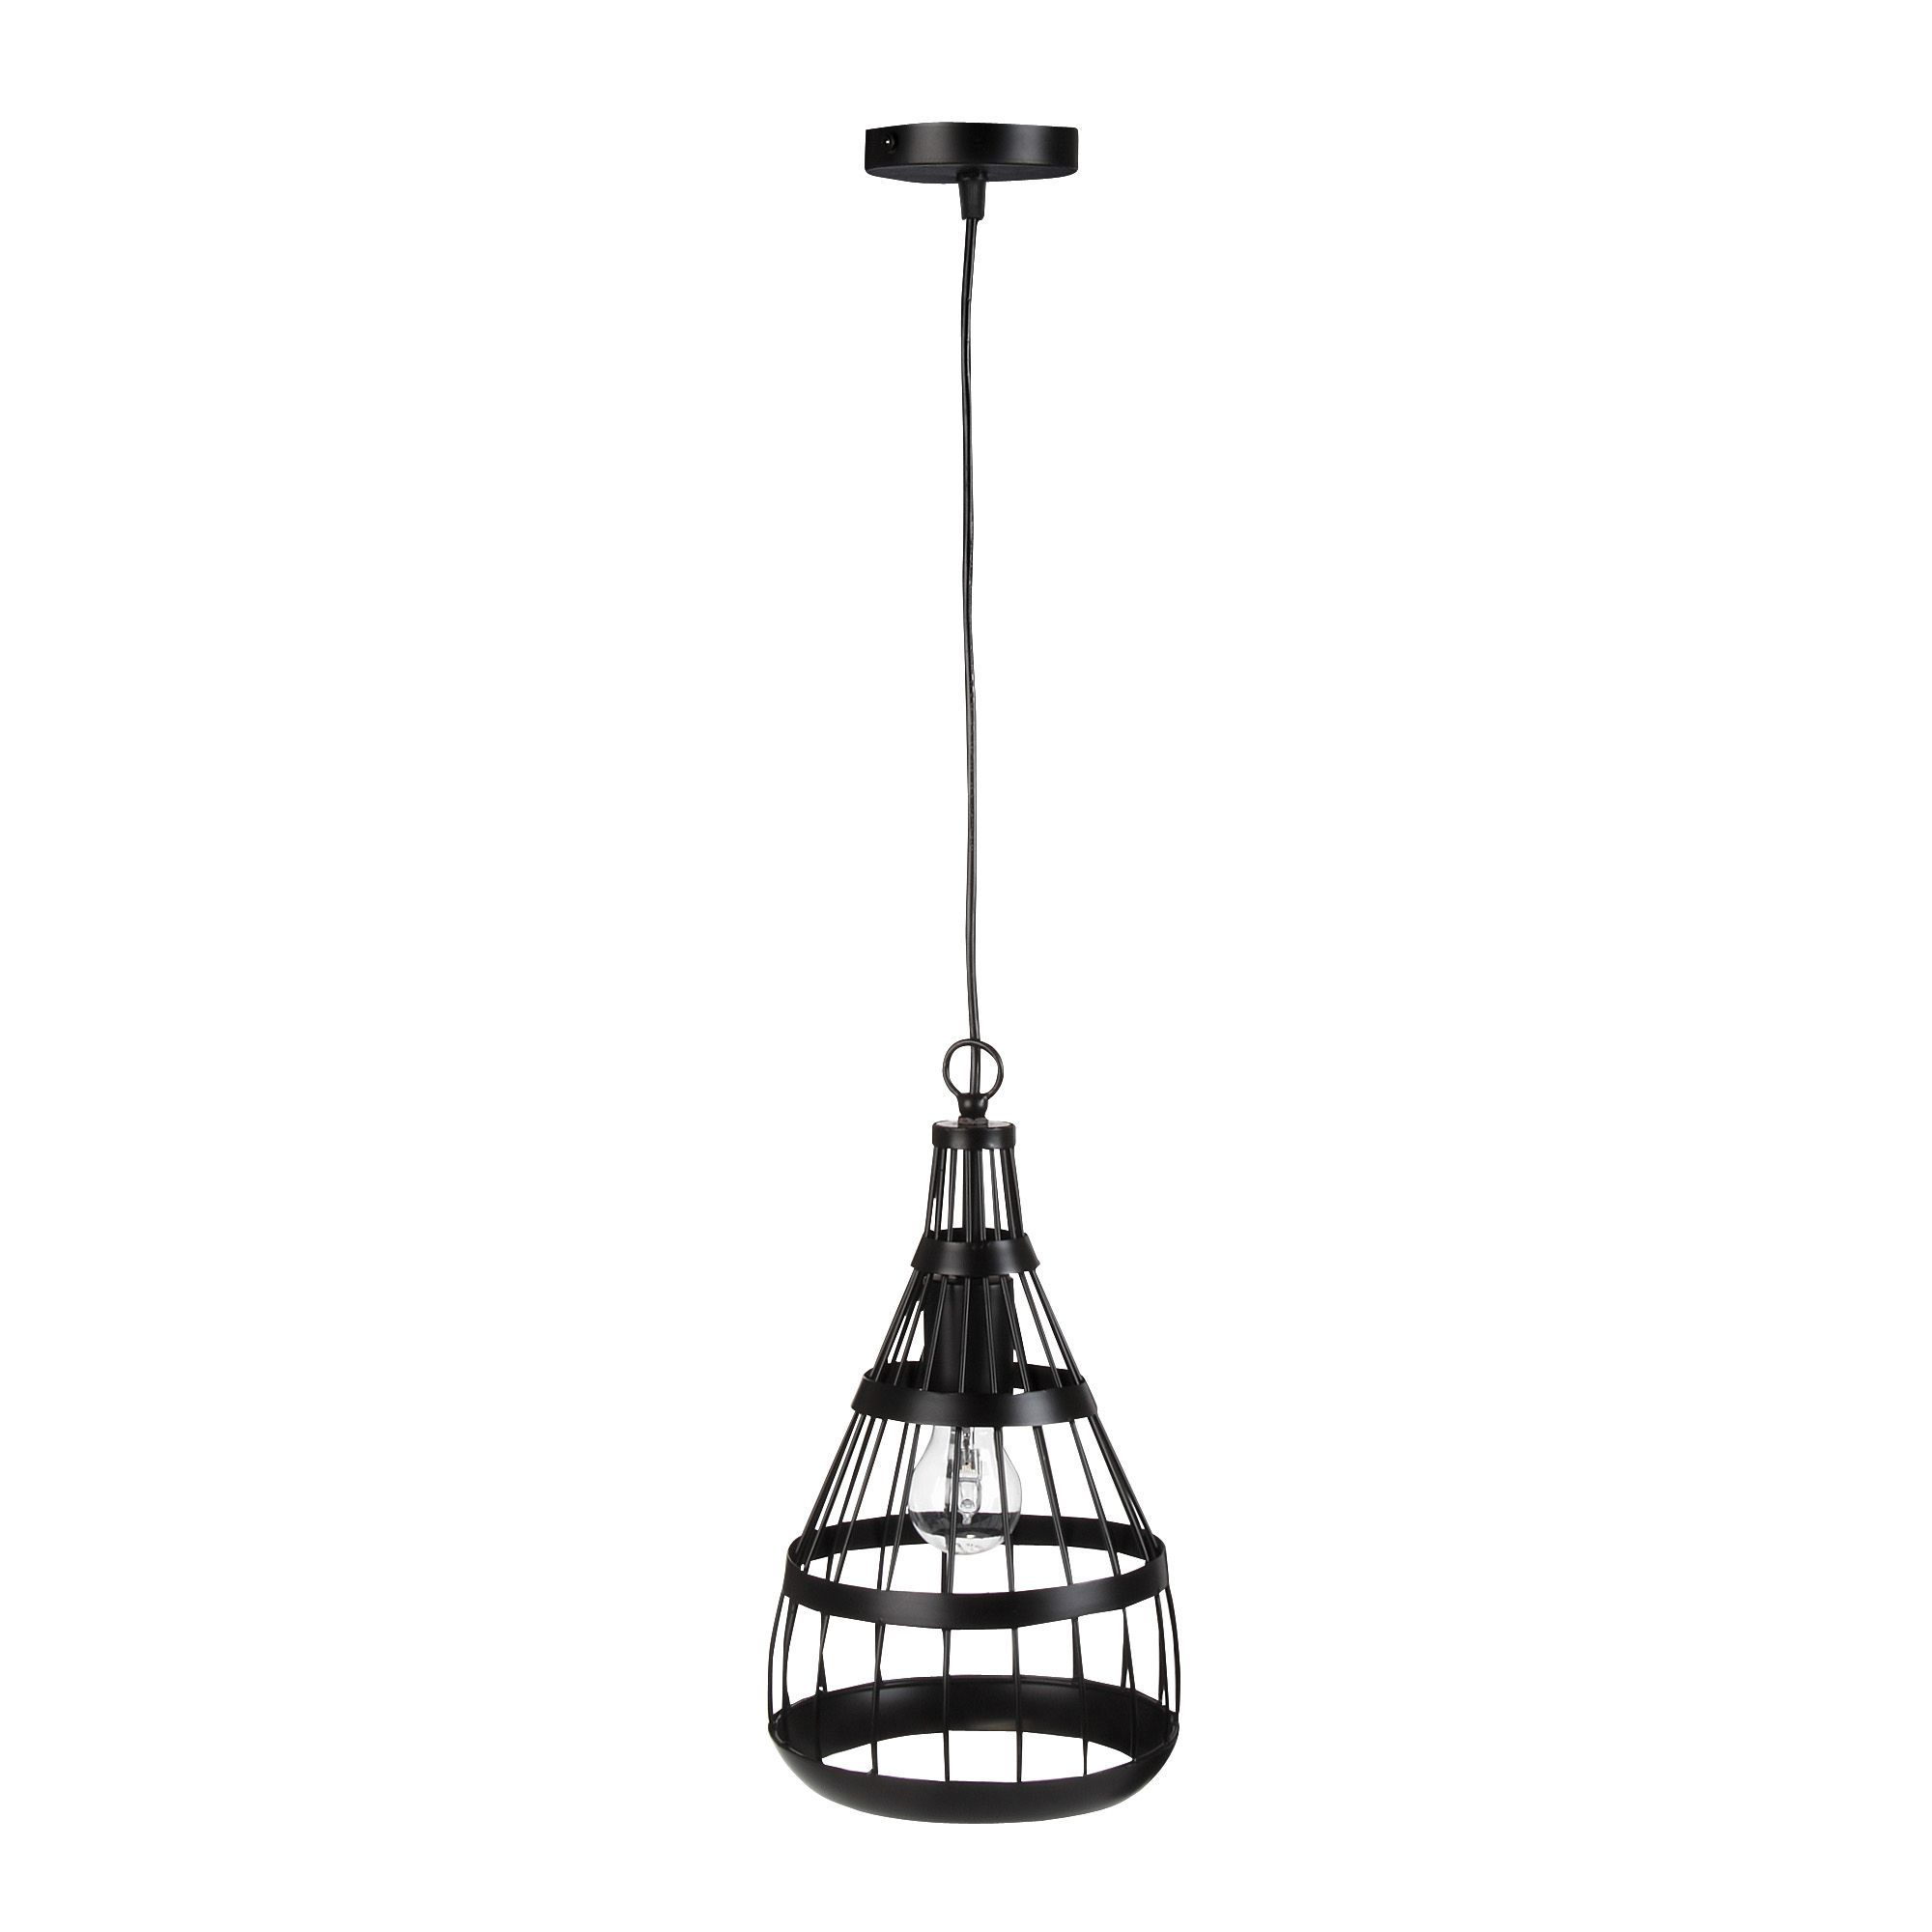 Alinea Lustre Alinea Luminaire Suspension Suspension Luminaire